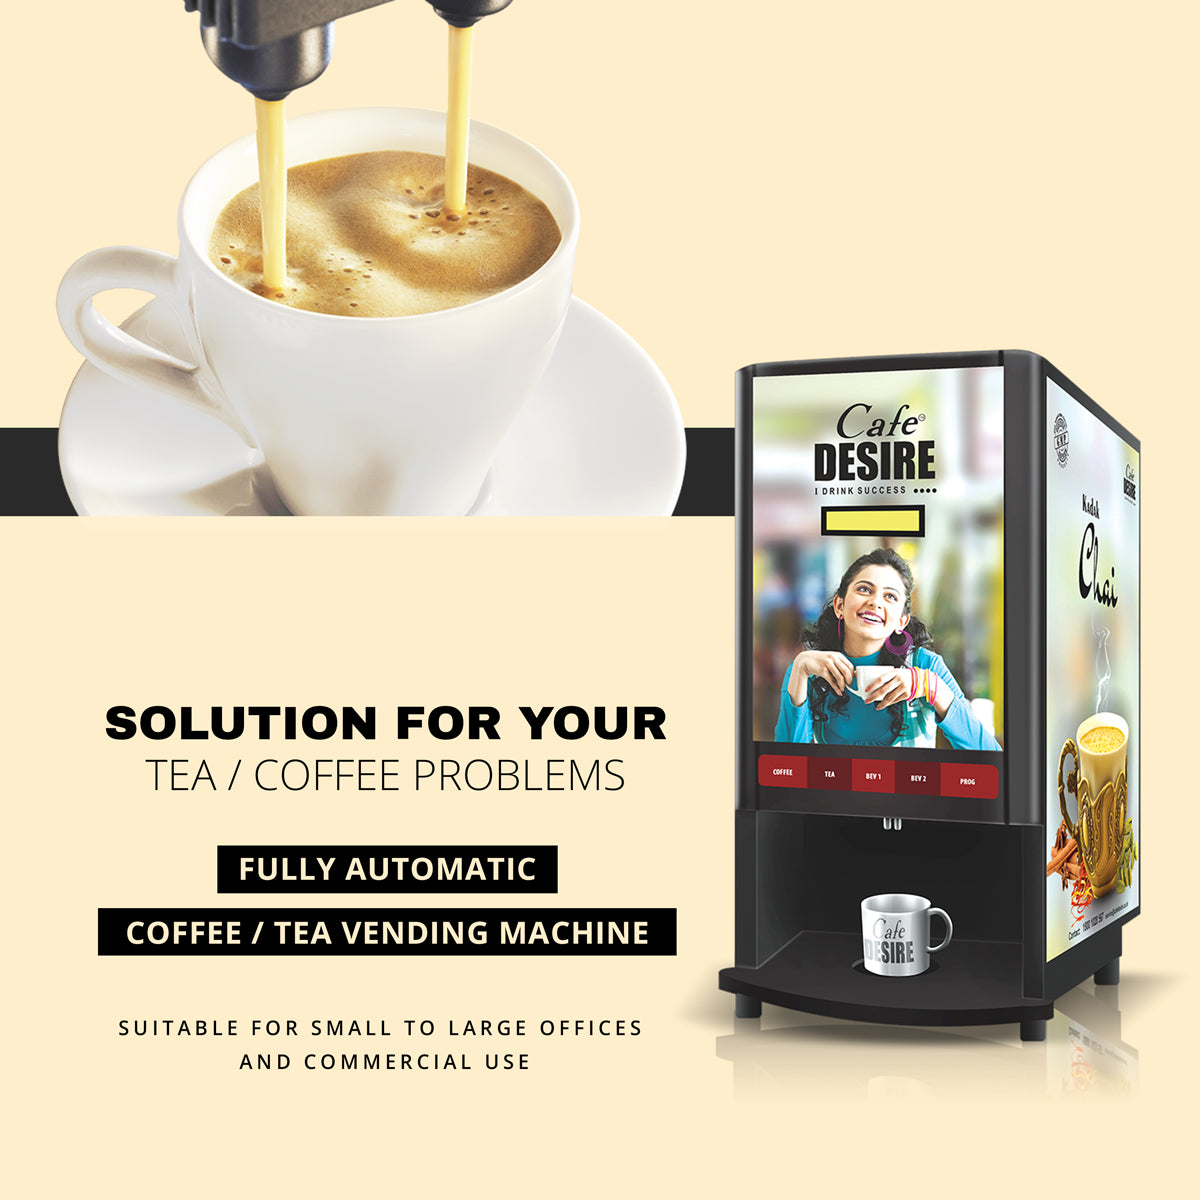 Coffee Machine Tea Machine - 2-in-1 Fully Automatic Tea Coffee Vending Machine